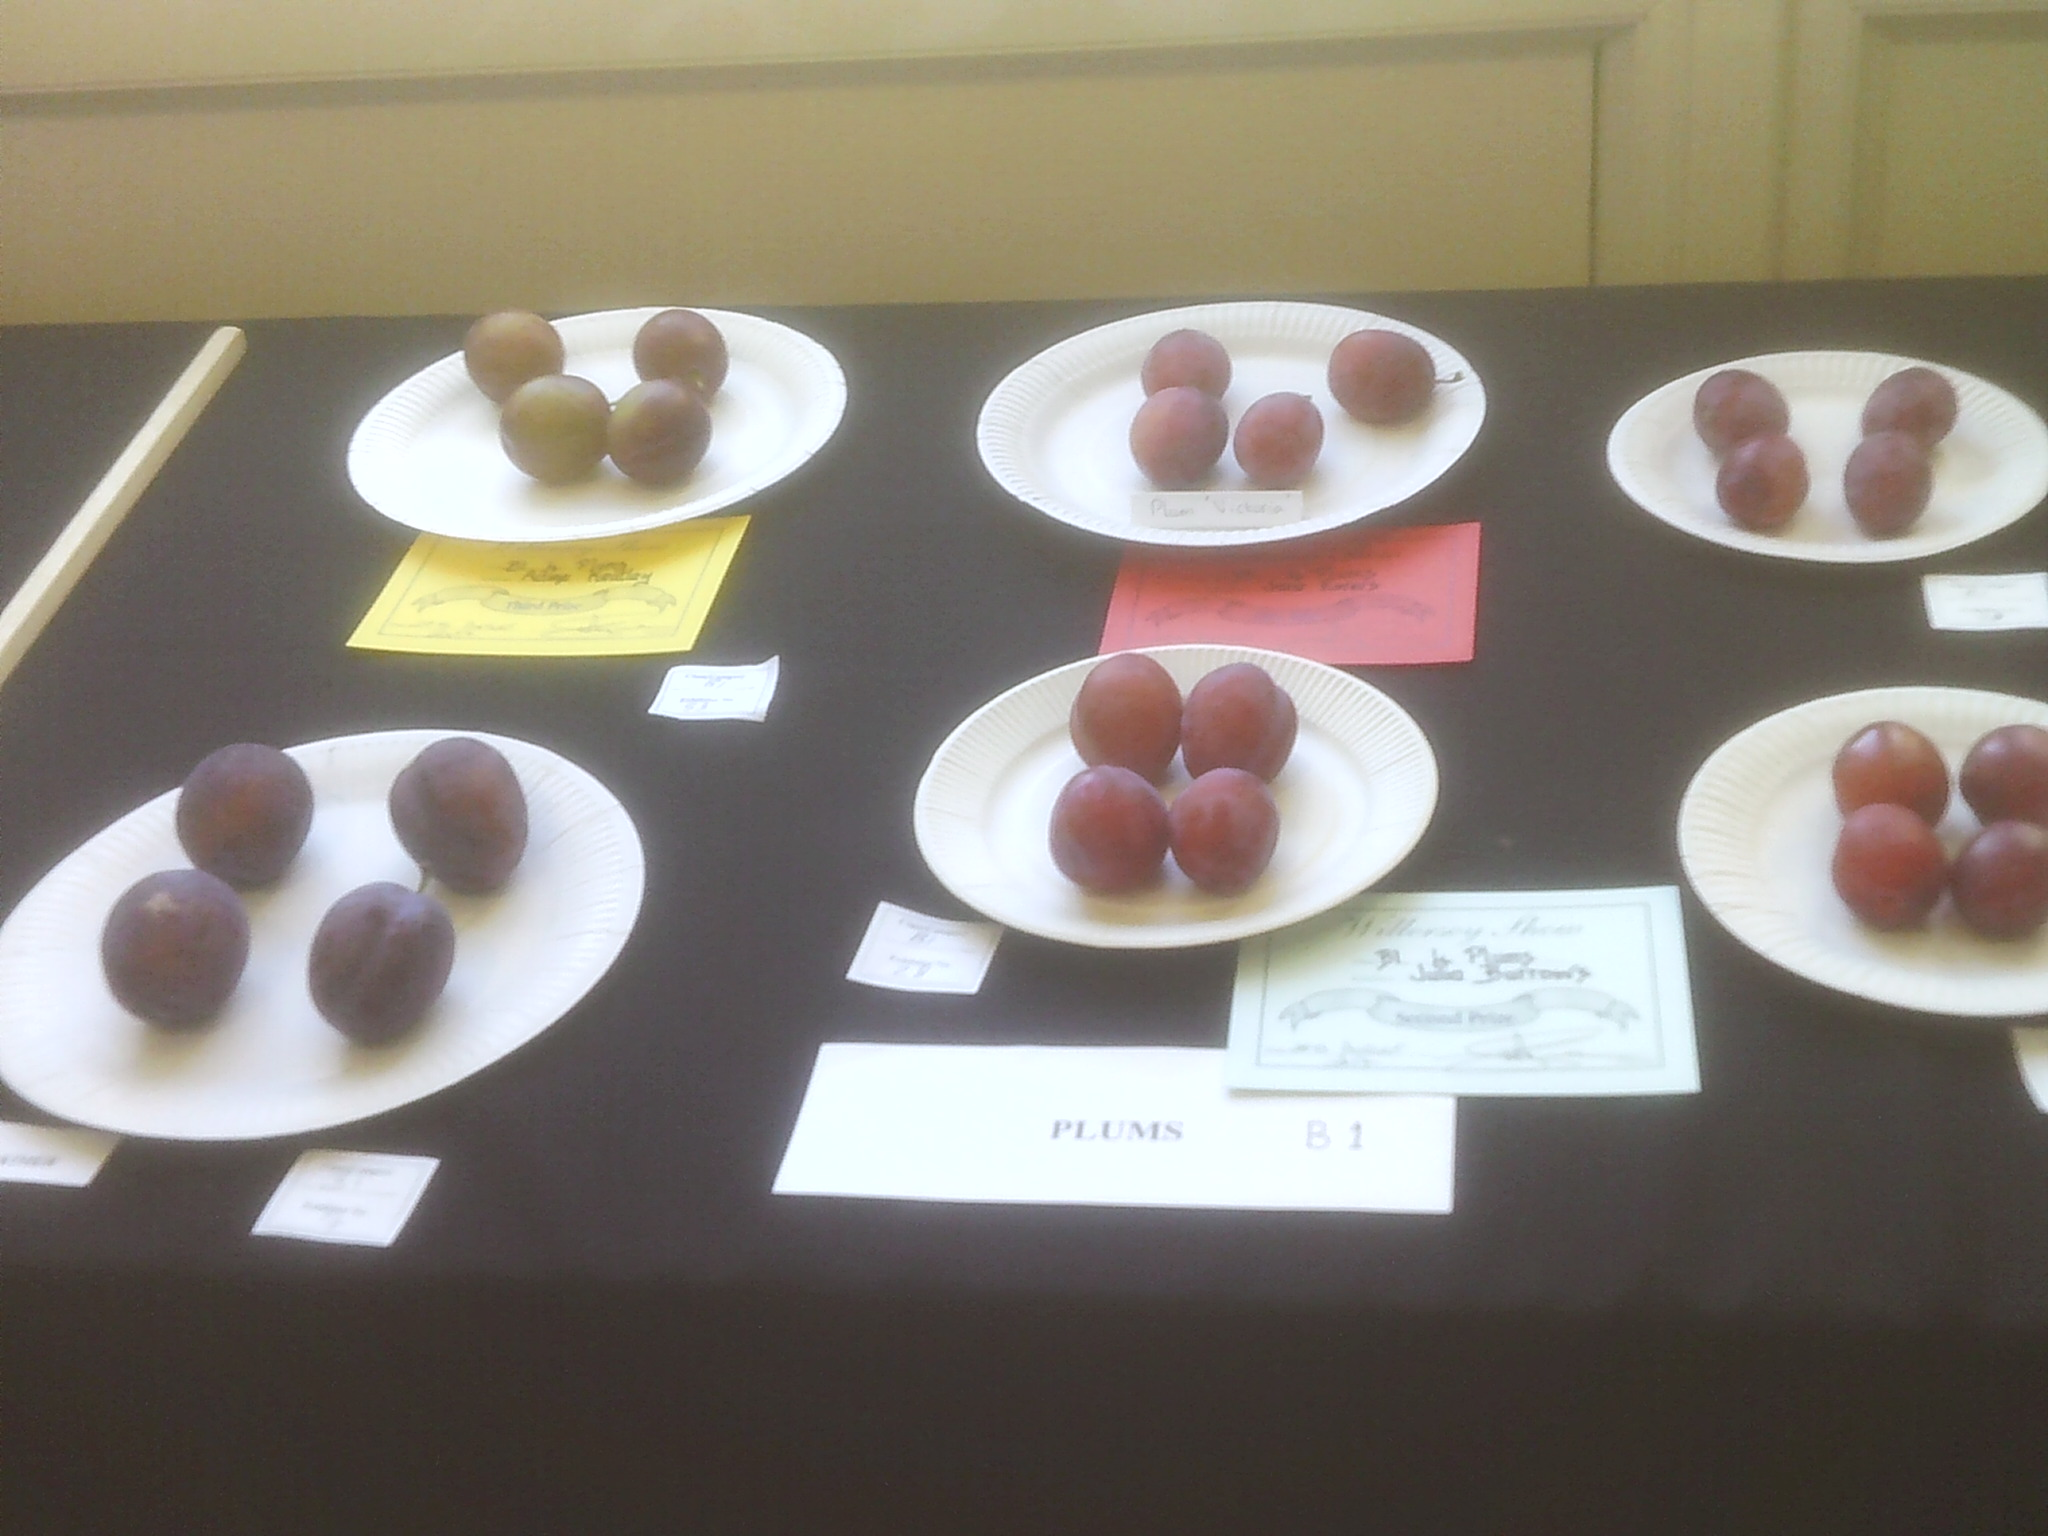 Plums at Willersey Horticultural Show